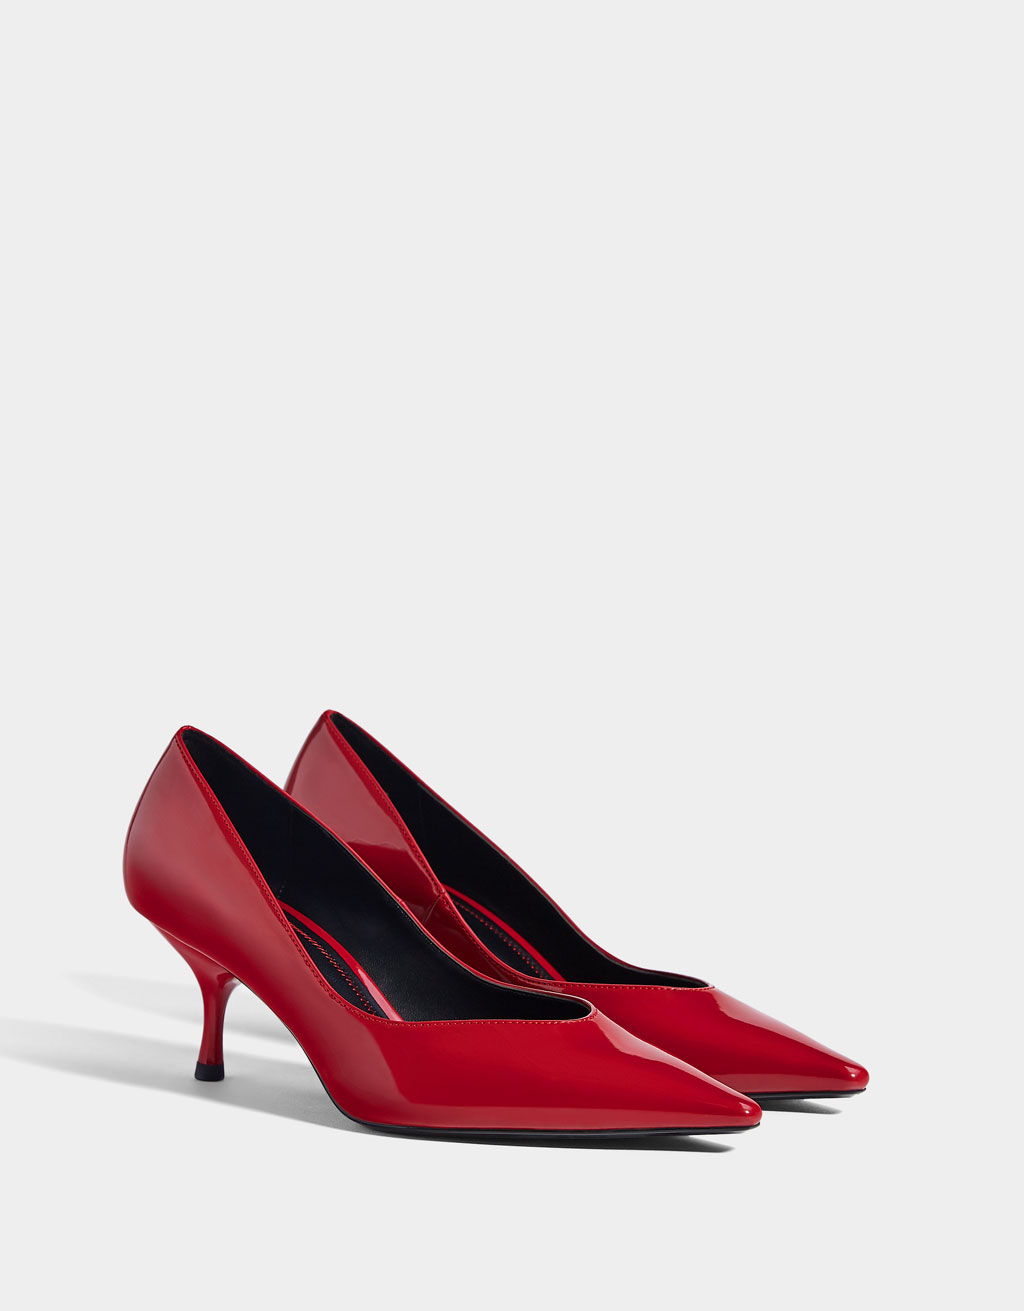 Mid-height patent leather high heeled shoes